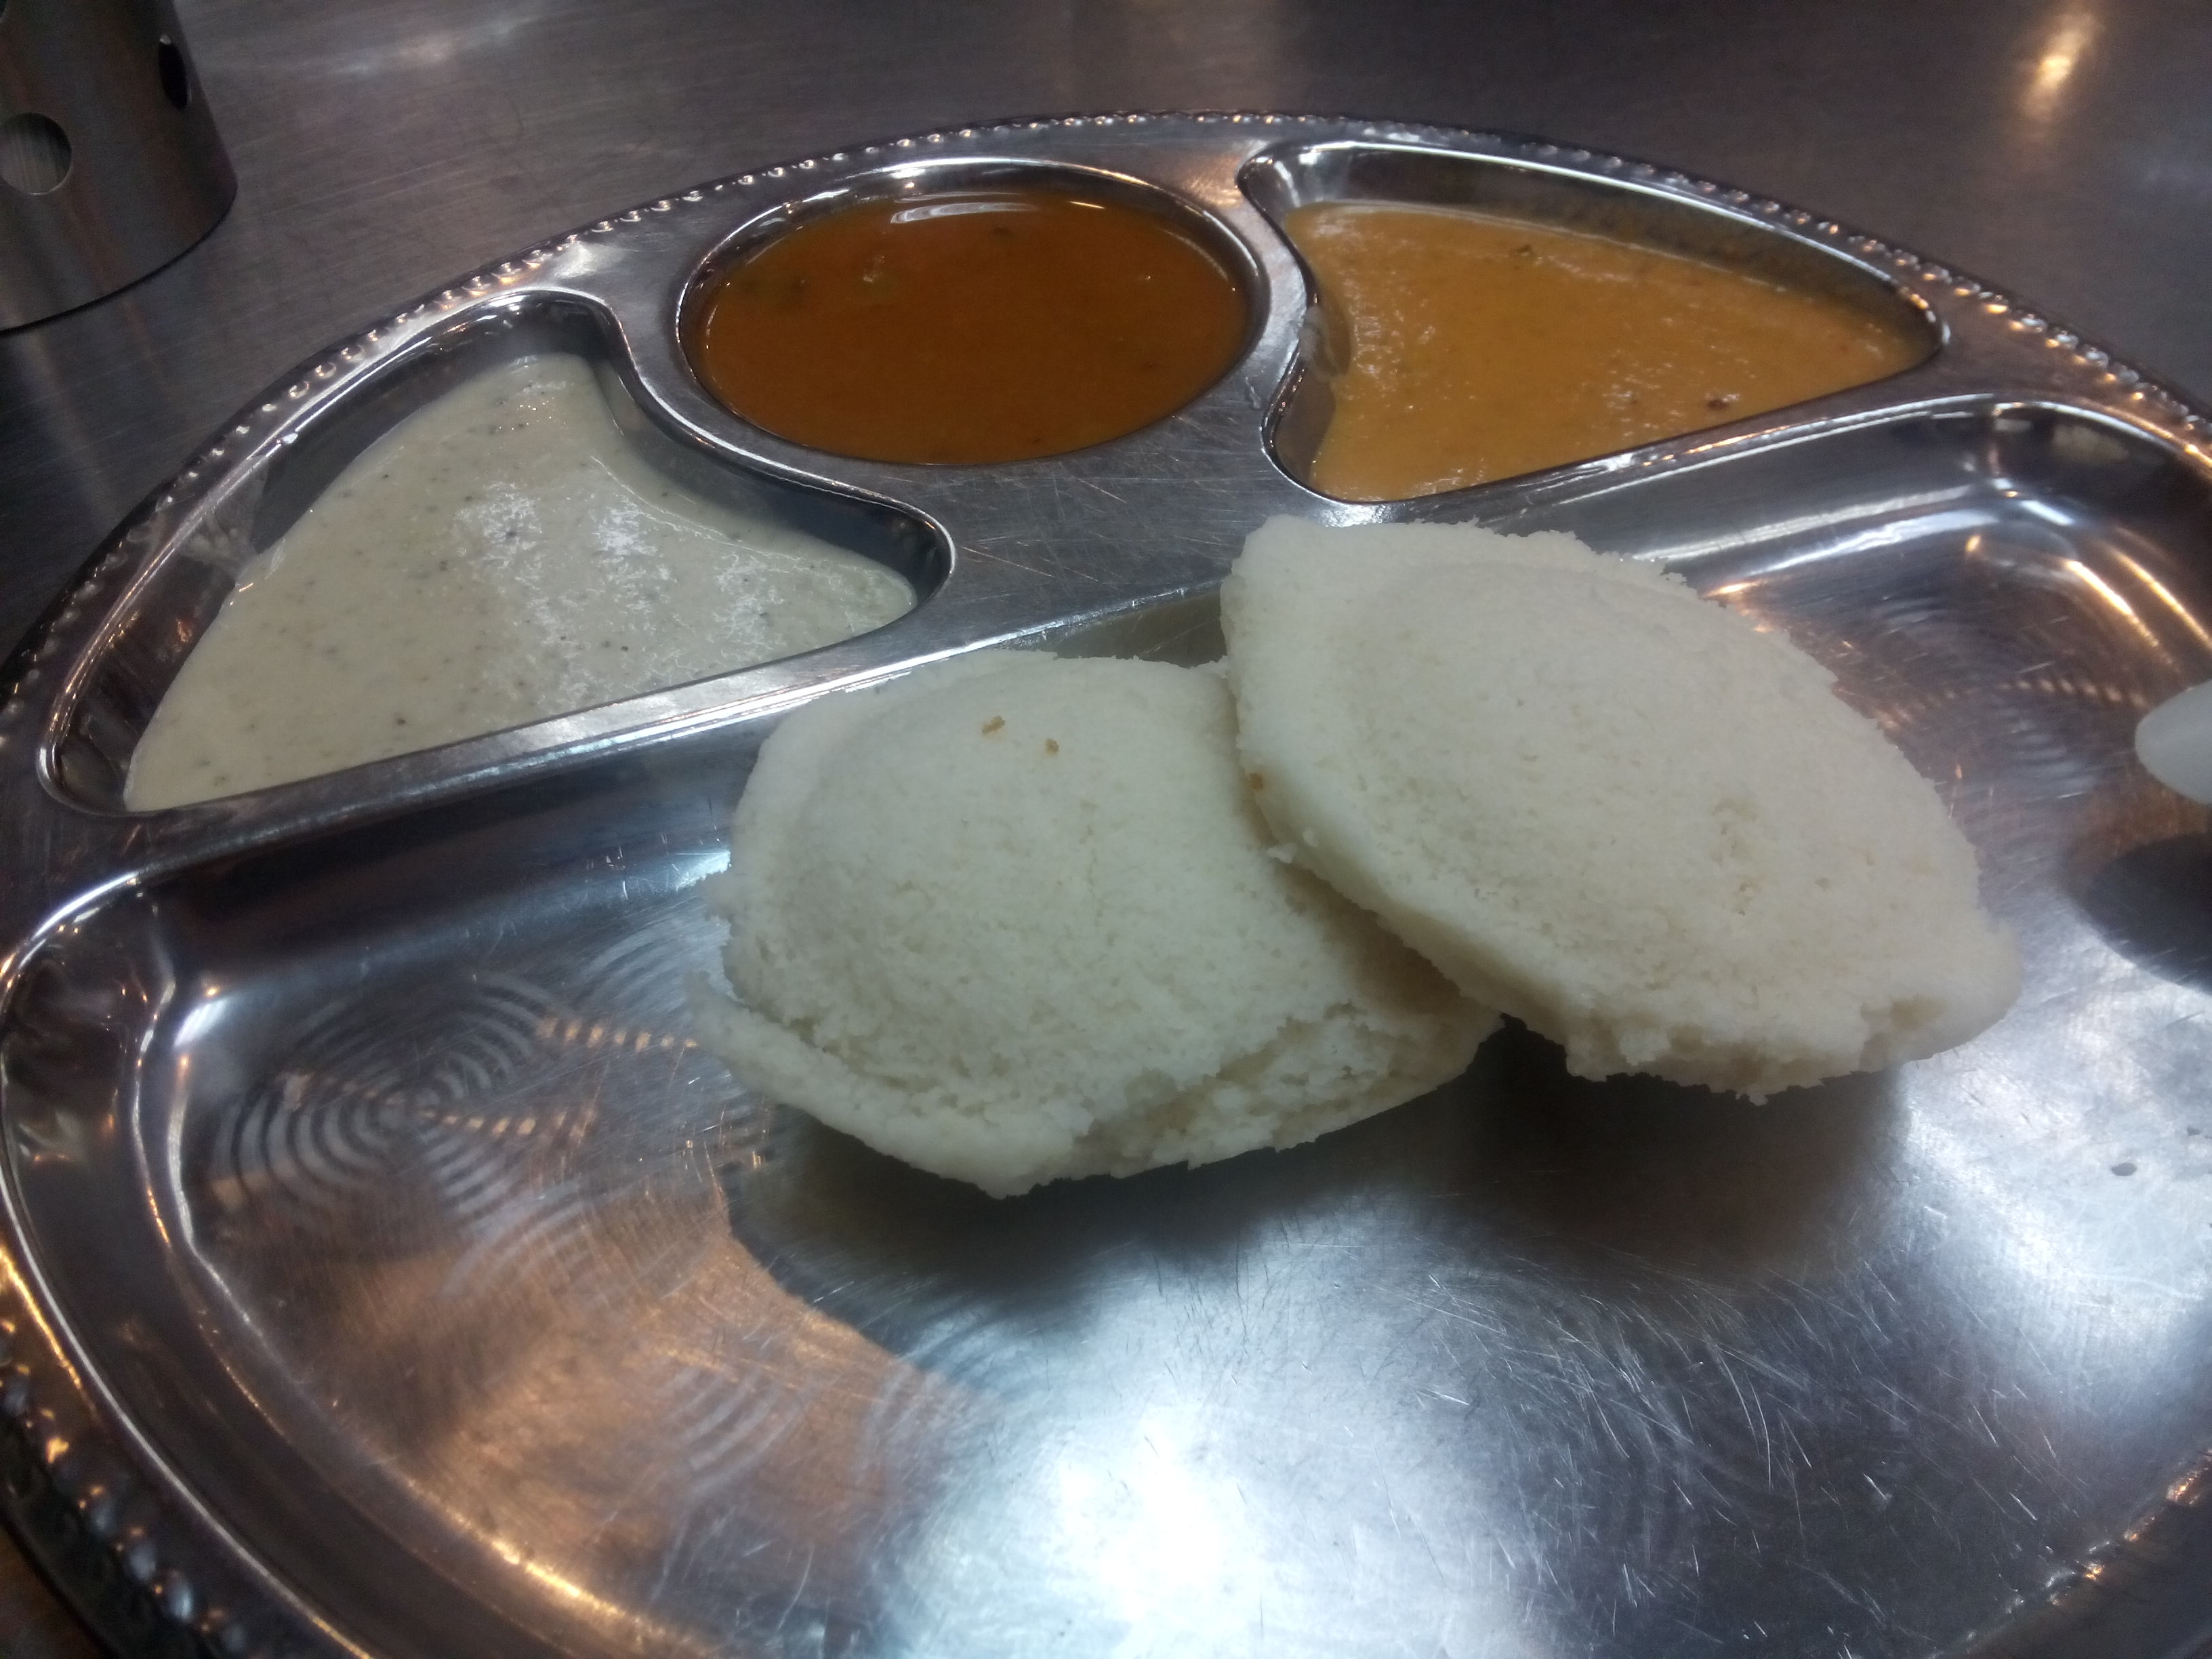 Rice bread (idli) and curries on a metal tray